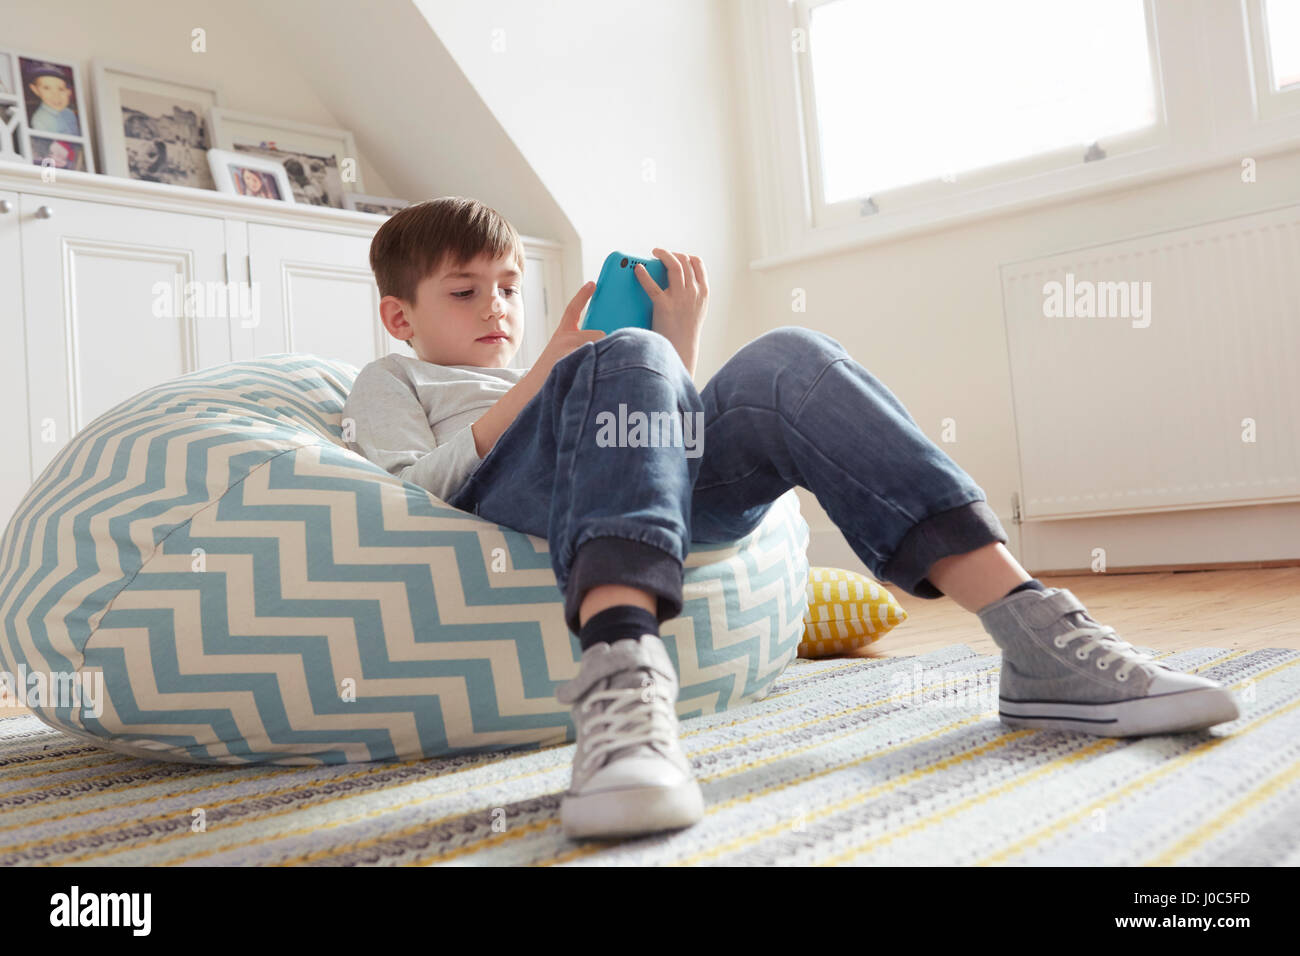 Boy reclining on beanbag chair looking at digital tablet - Stock Image